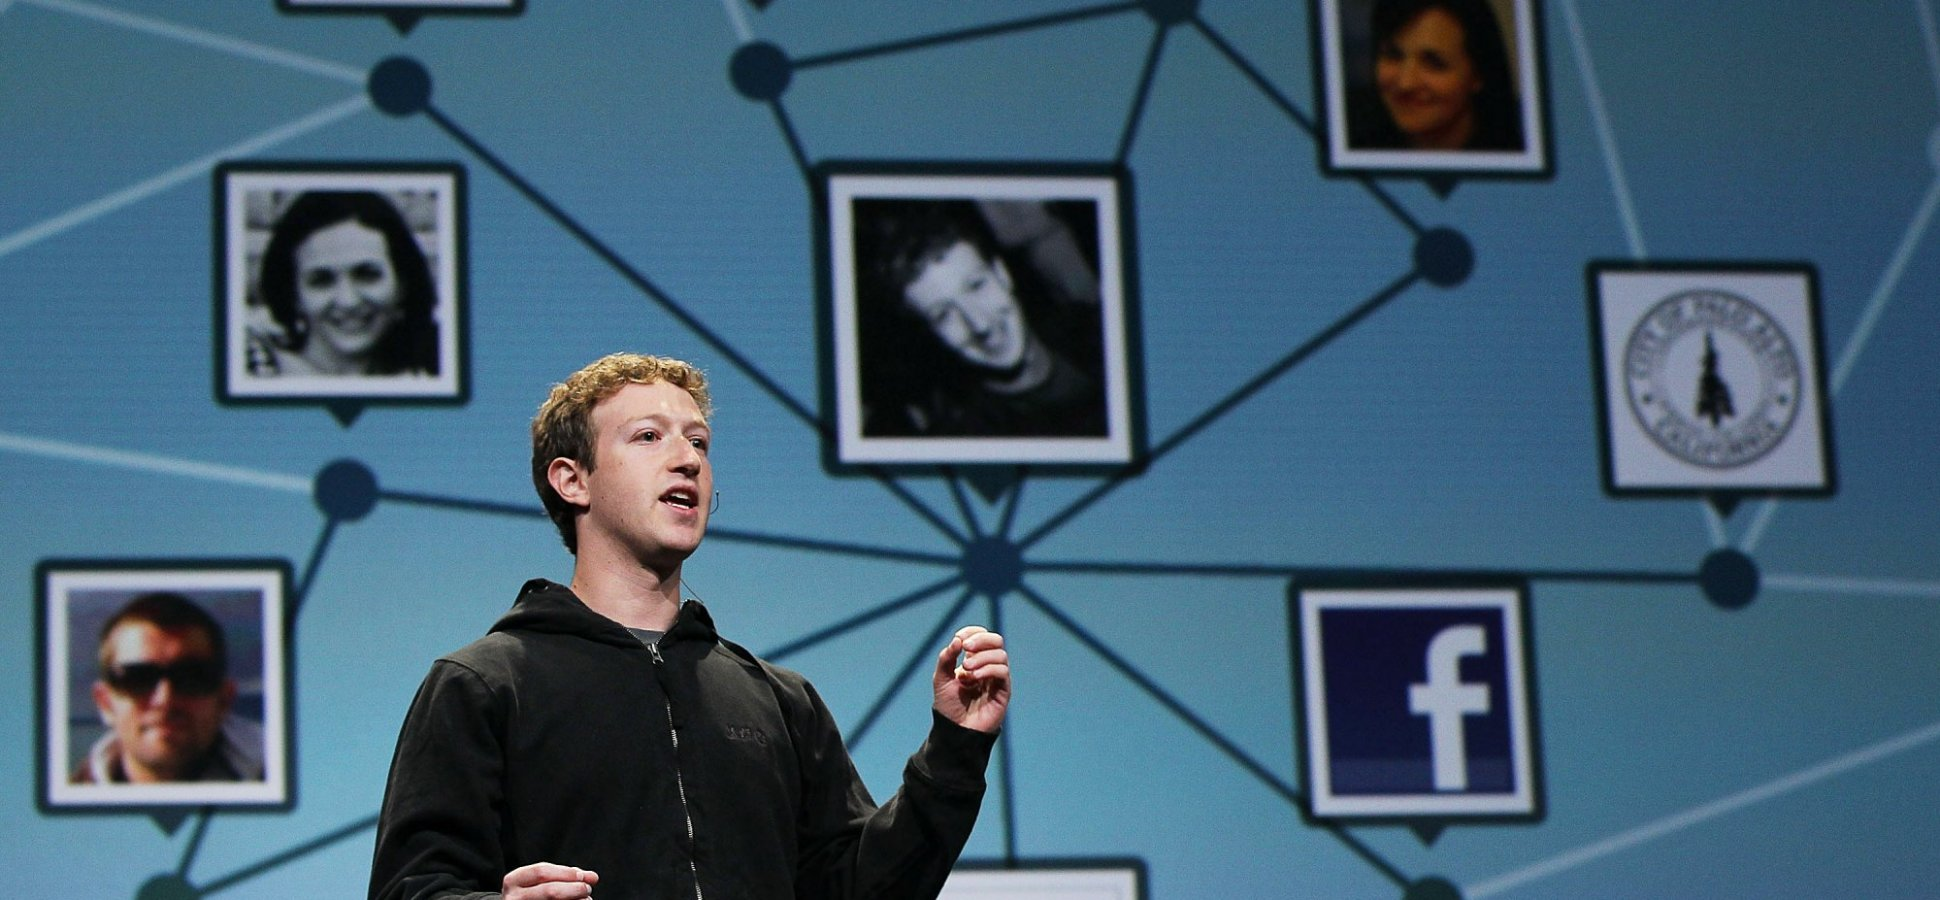 Teens Are Leaving Facebook in Droves for This Way-Cooler App